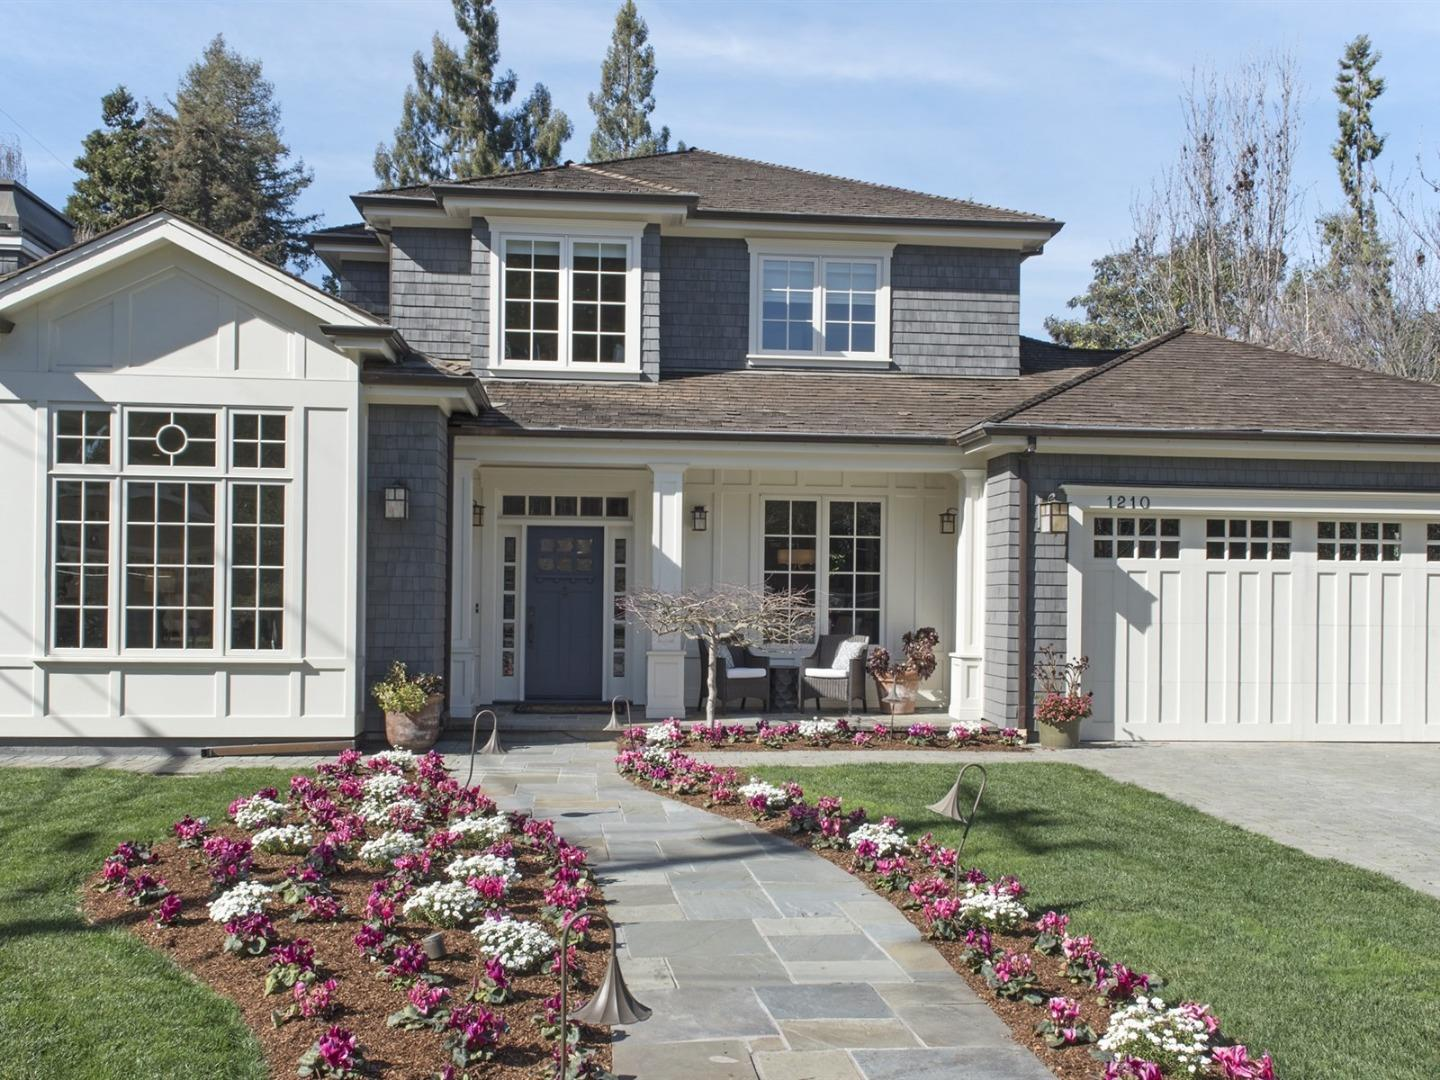 Single Family Home for Sale at 1210 Bay Laurel Drive 1210 Bay Laurel Drive Menlo Park, California 94025 United States